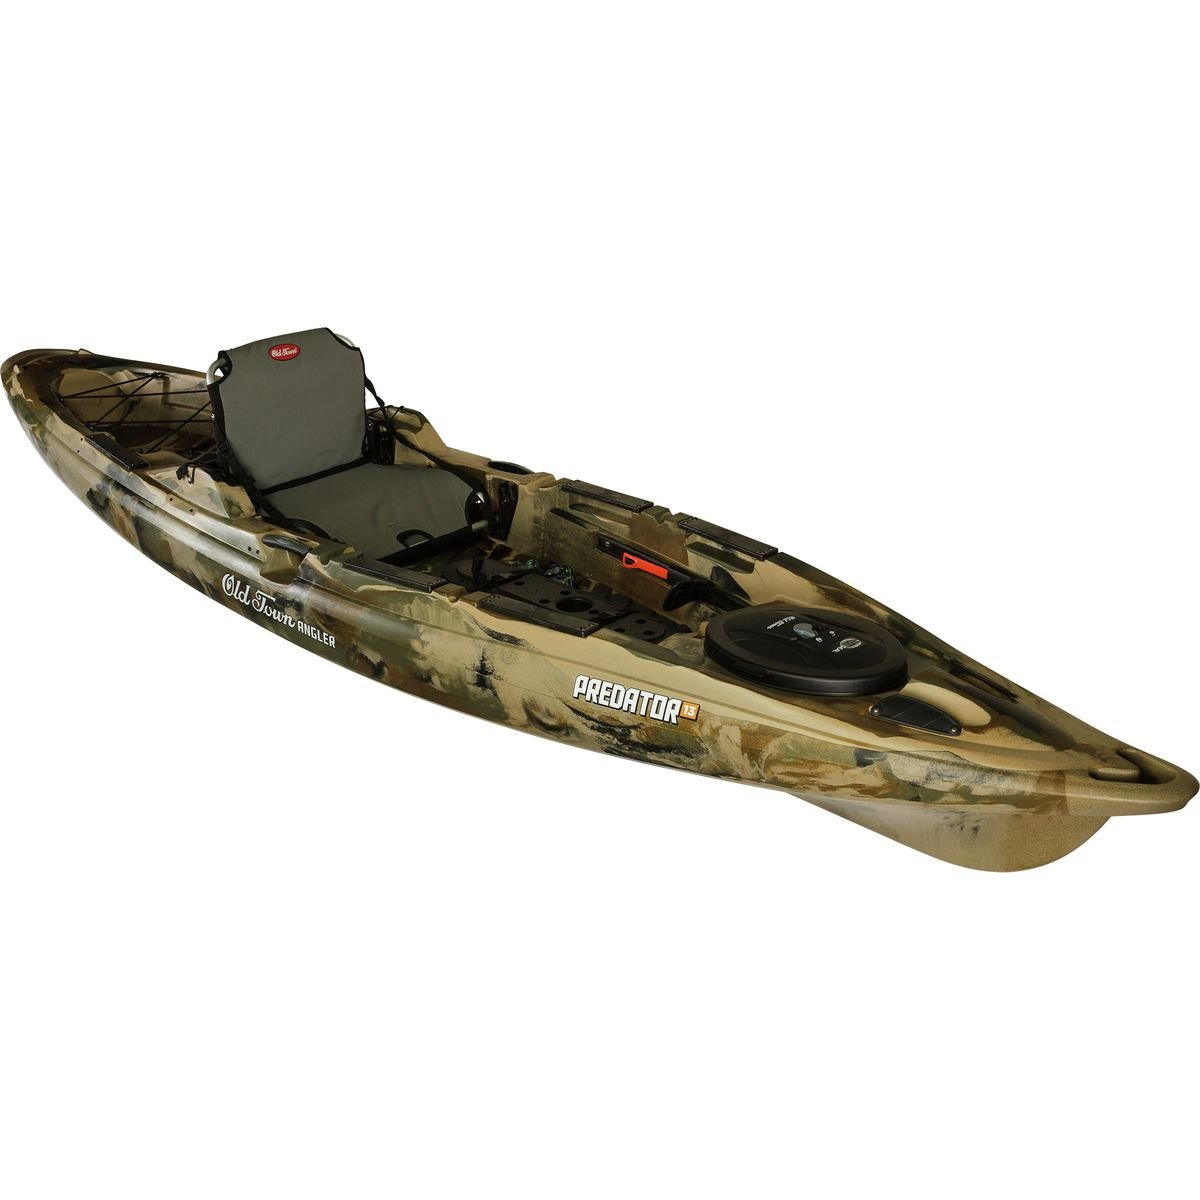 Old Town Predator 13 Fishing Kayak